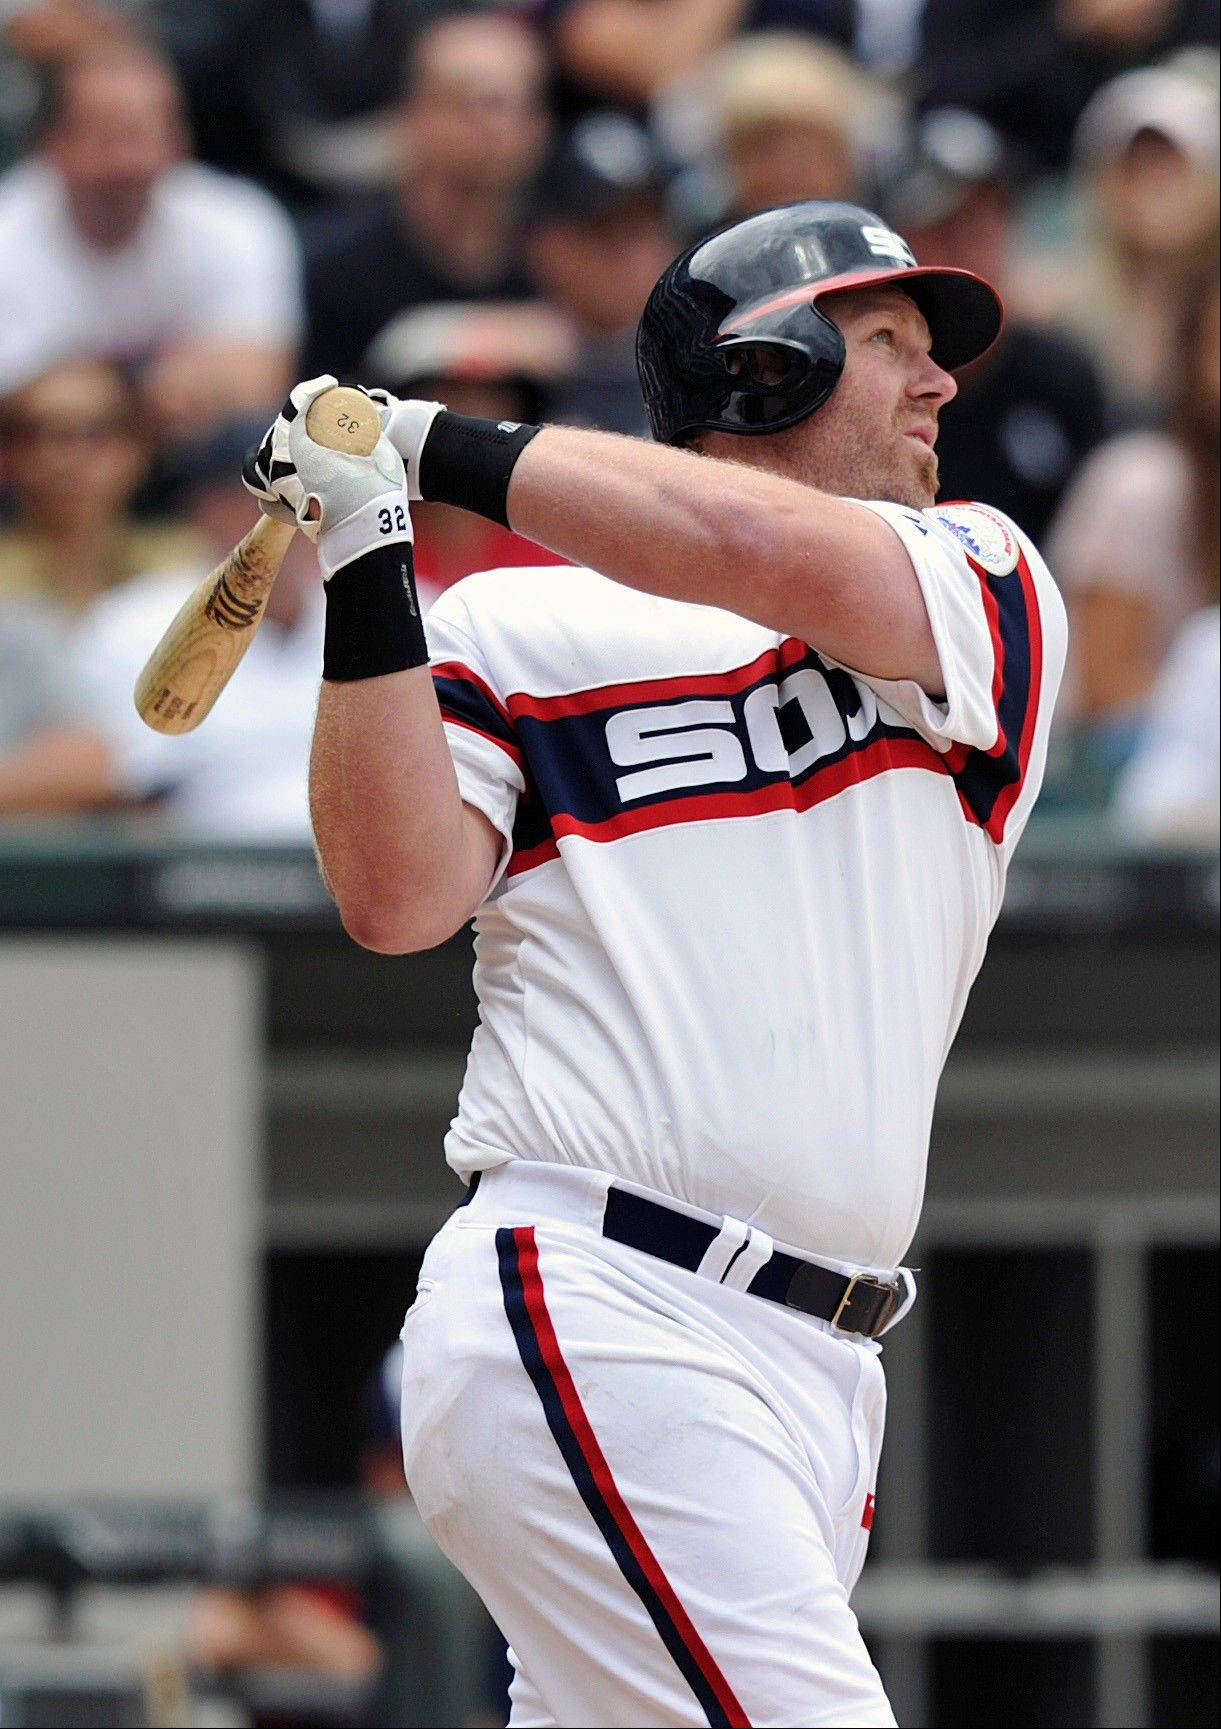 Adam Dunn watches his solo home run against the Royals during the sixth inning of the Sox' loss Sunday at U.S. Cellular Field.